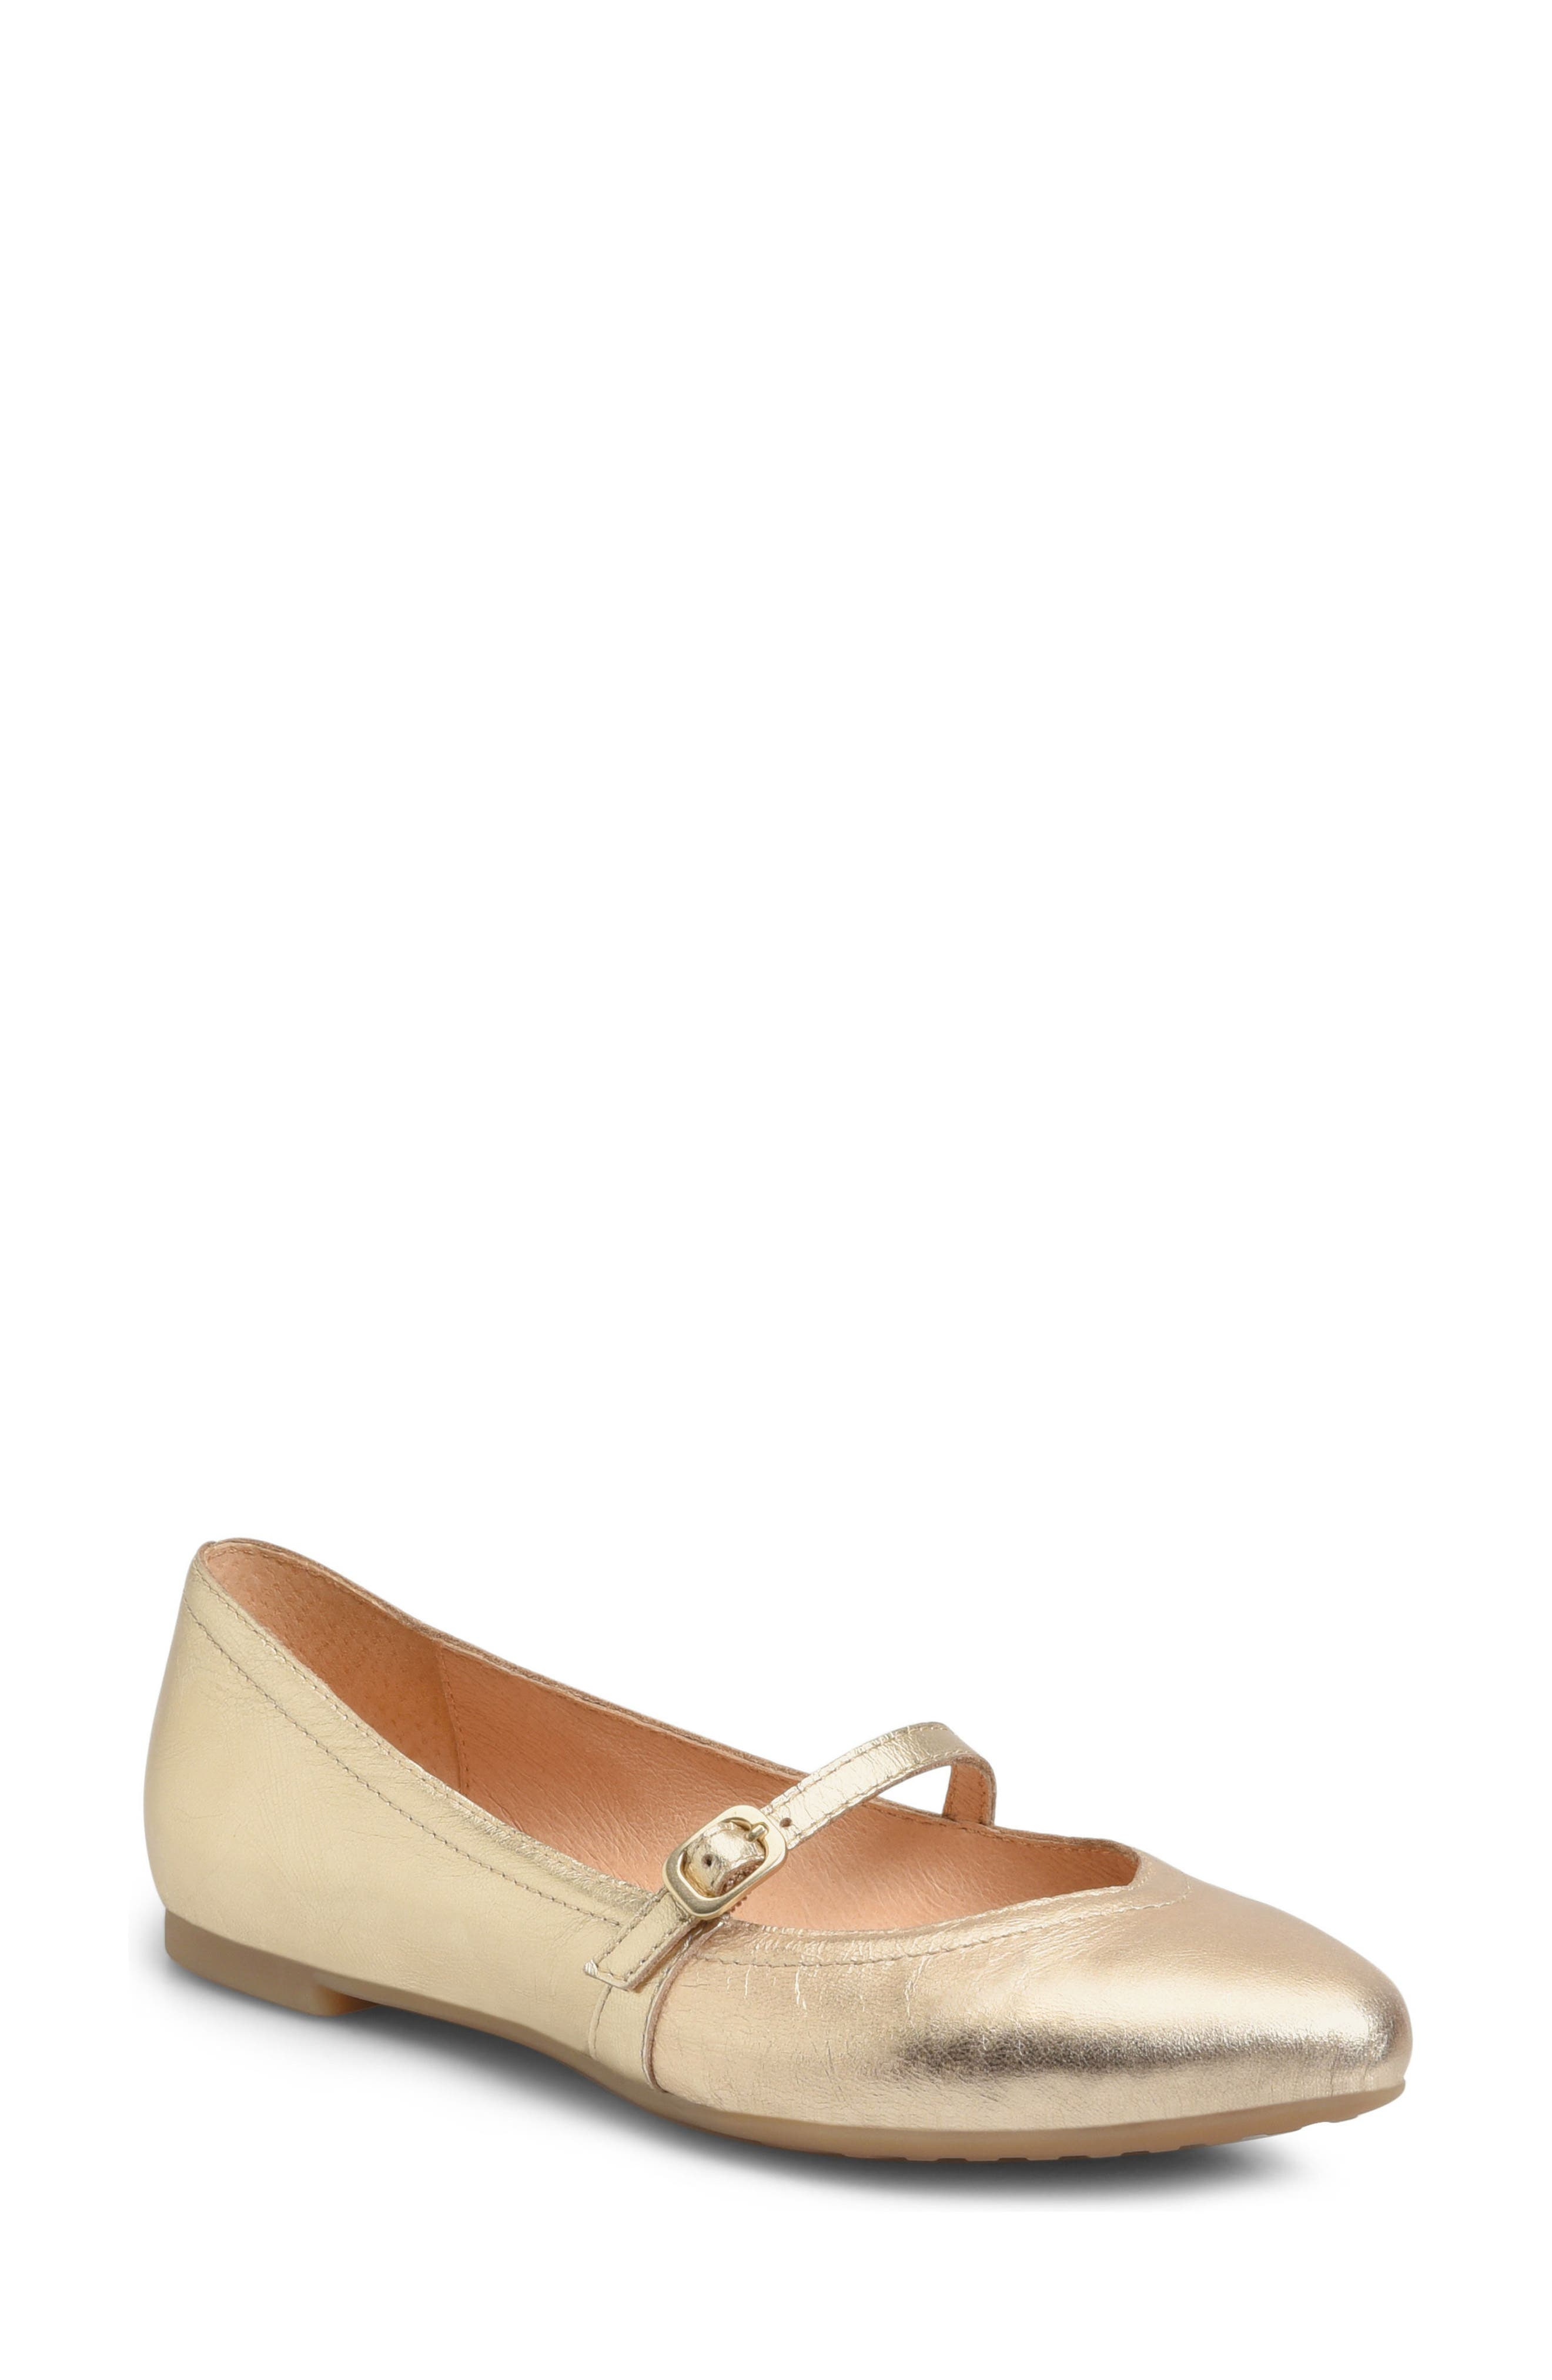 Lynn Mary Jane Flat,                             Main thumbnail 1, color,                             Gold Leather